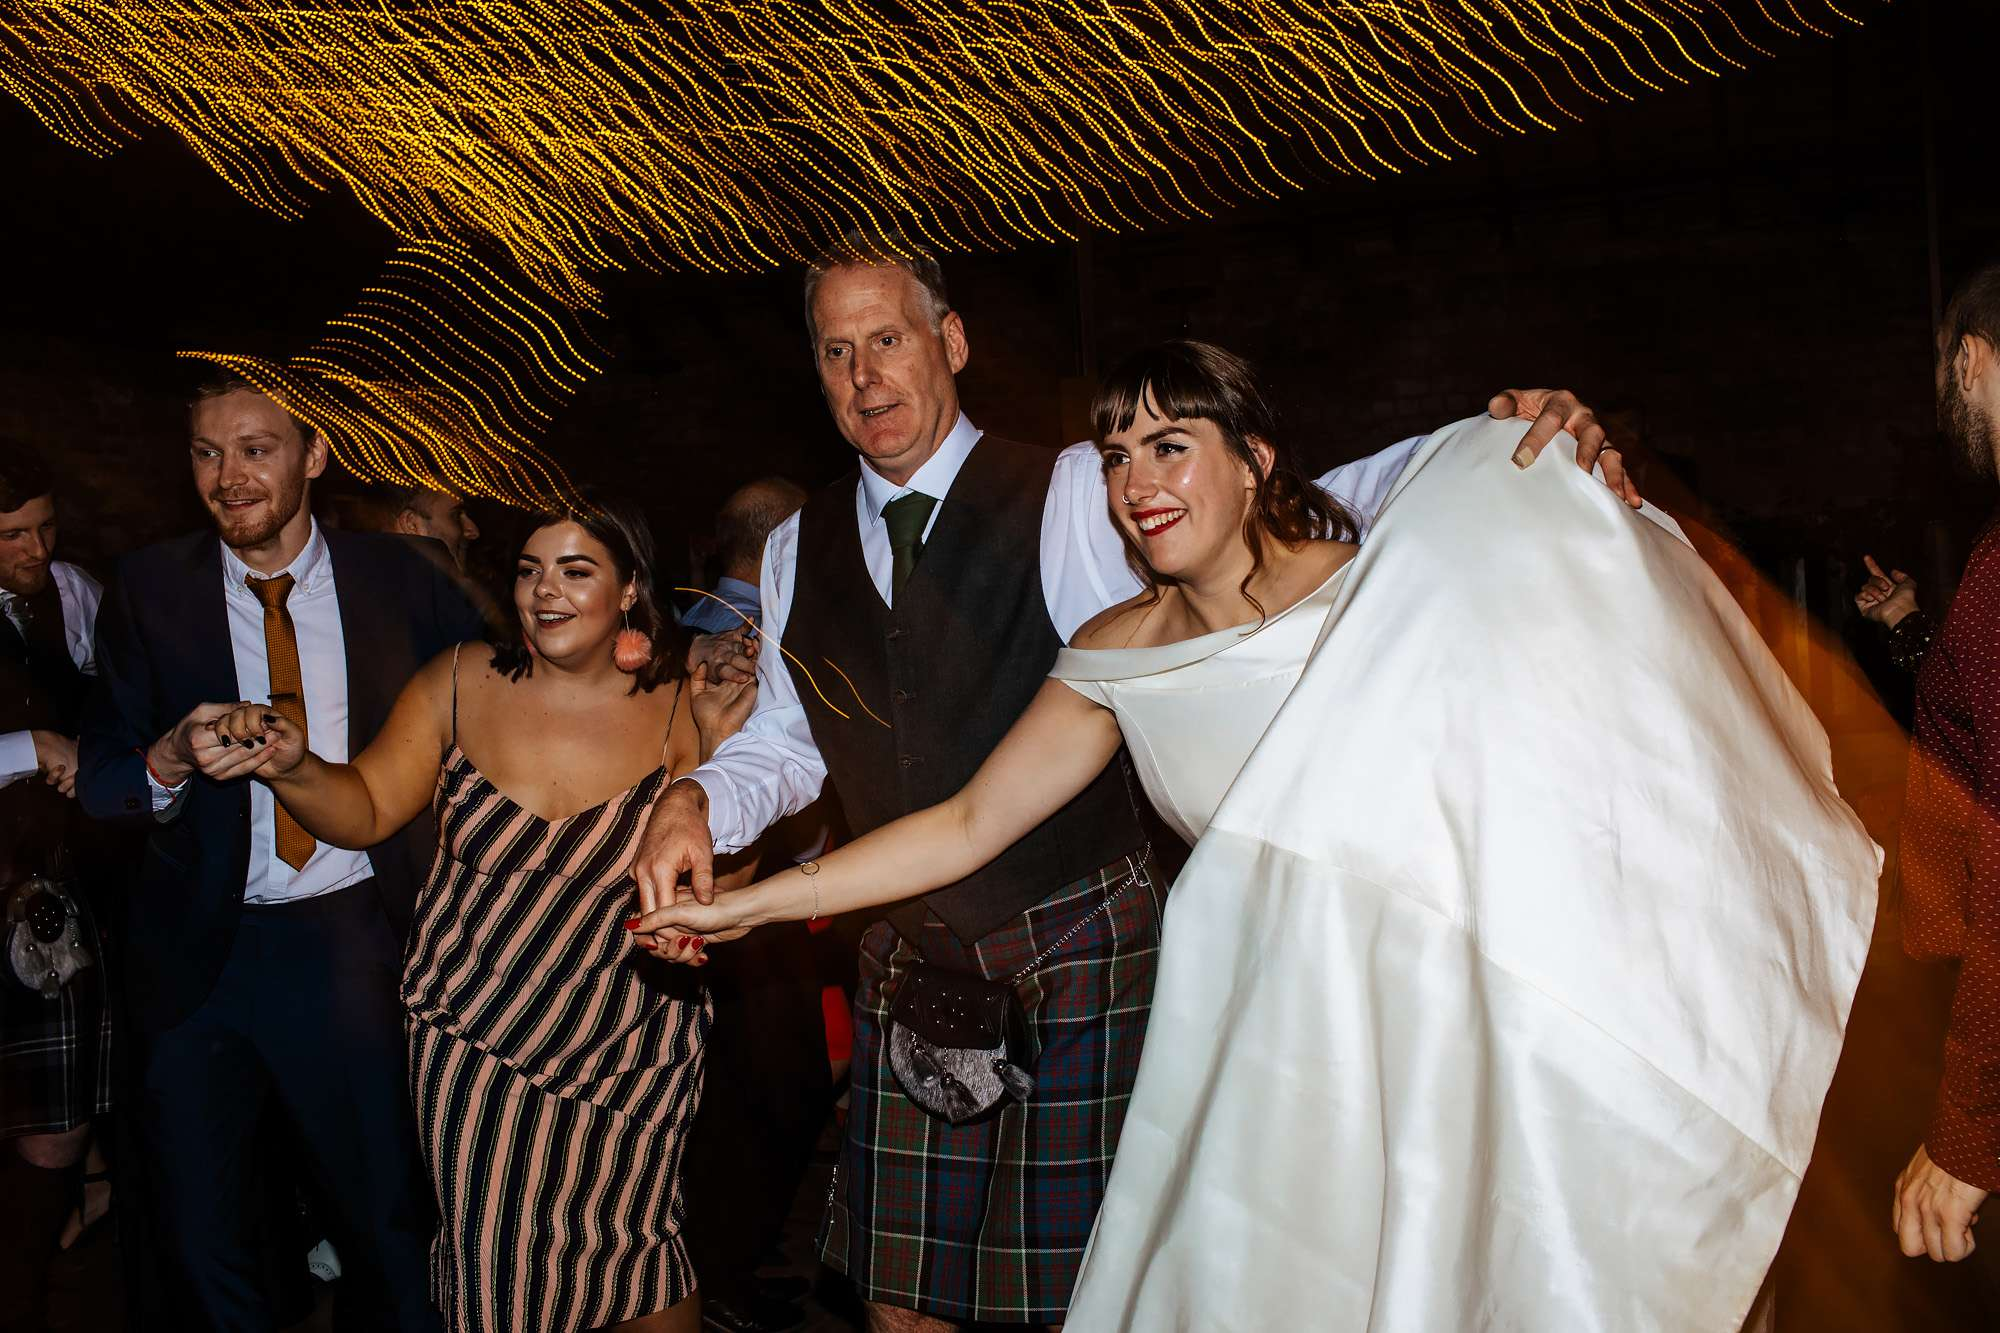 Bride and dad ceilidh dancing at her wedding